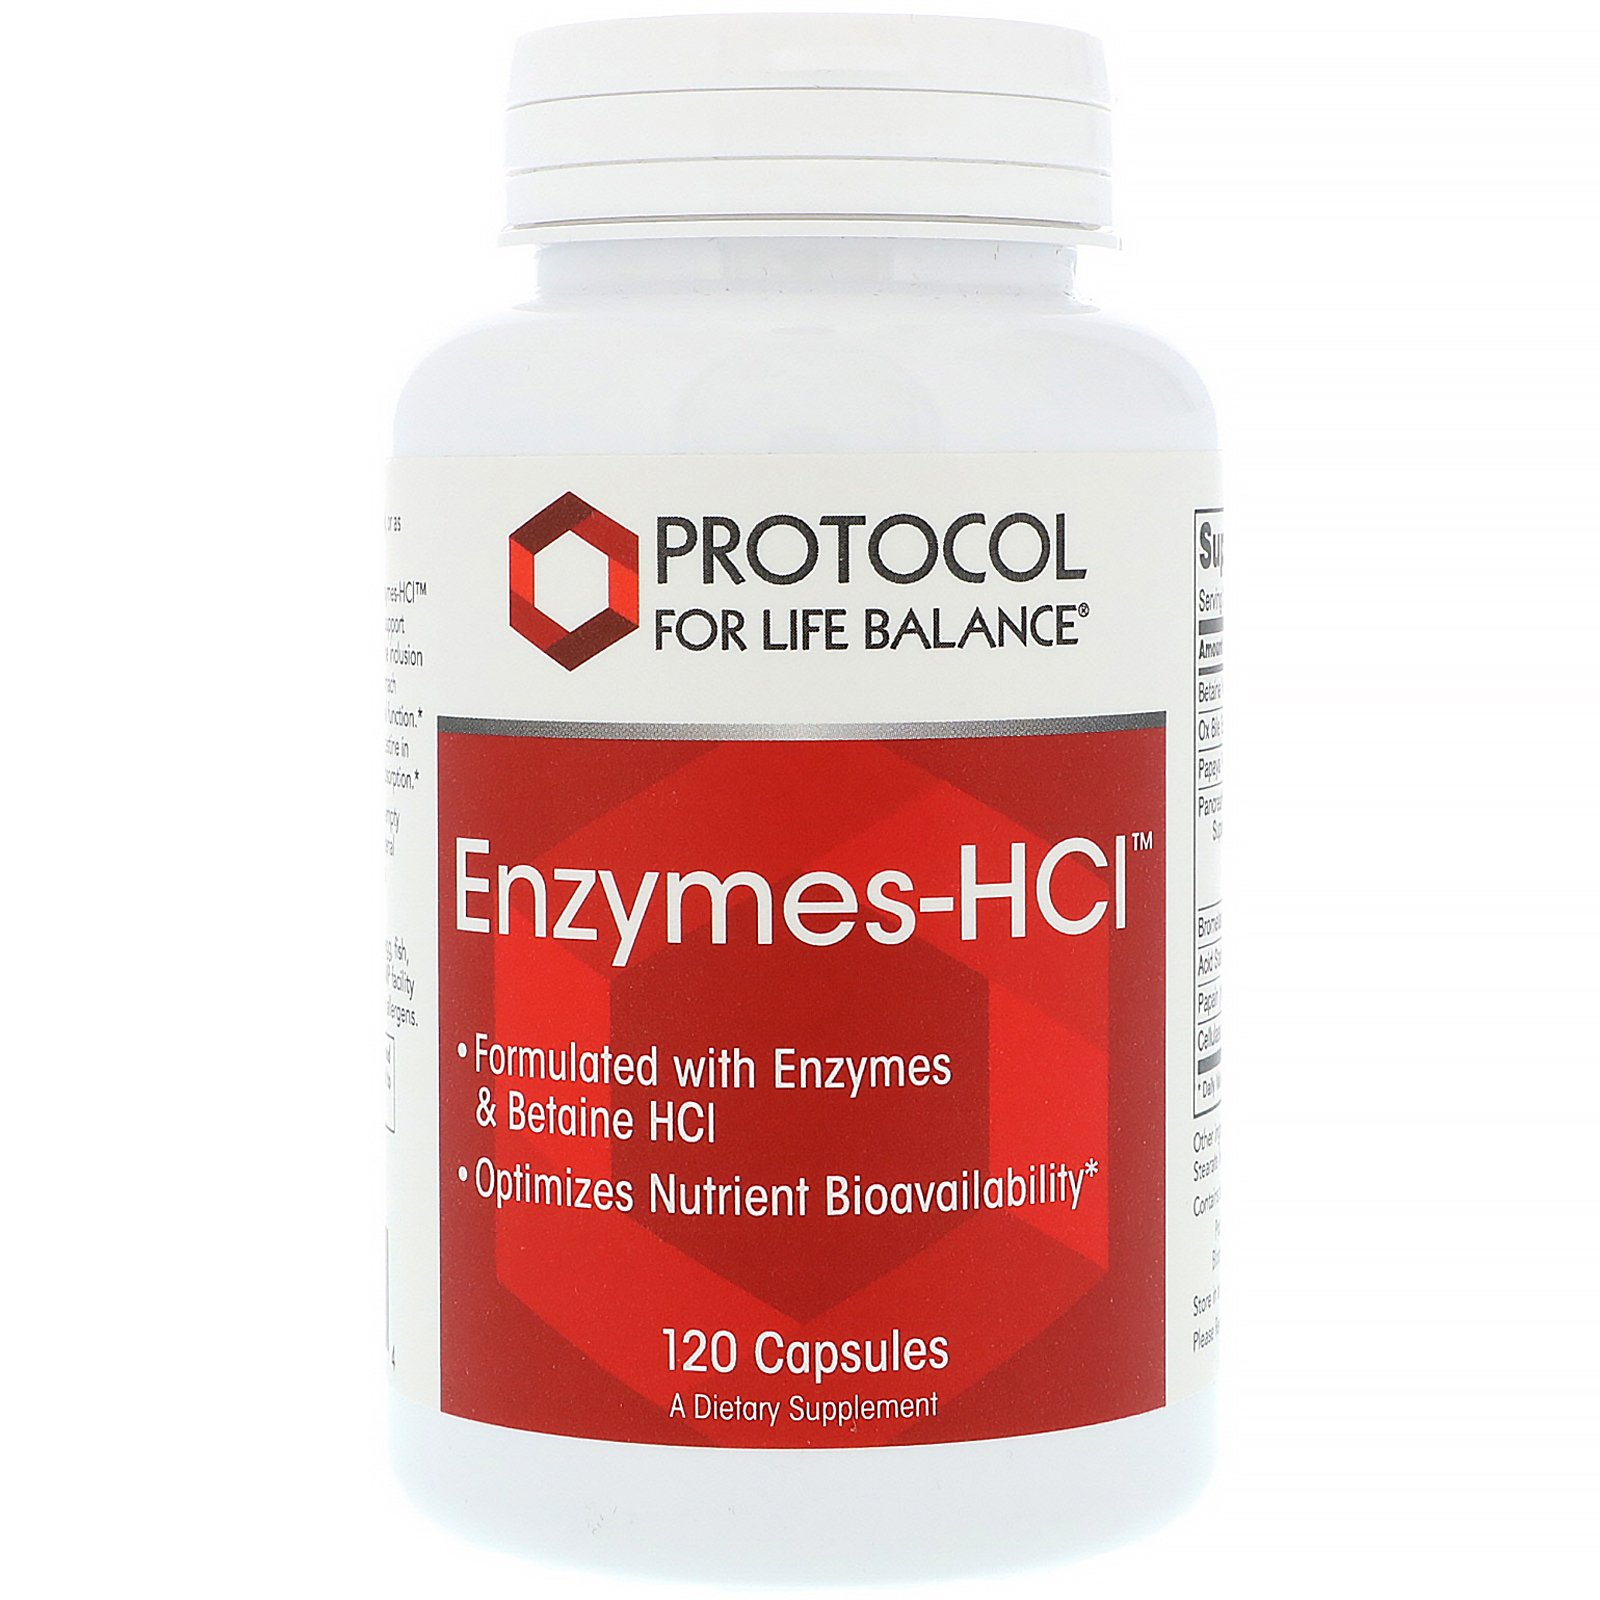 Protocol For Life Balance - Enzymes-HCl - Promotes Digestive Health,  Formulated with Enzymes